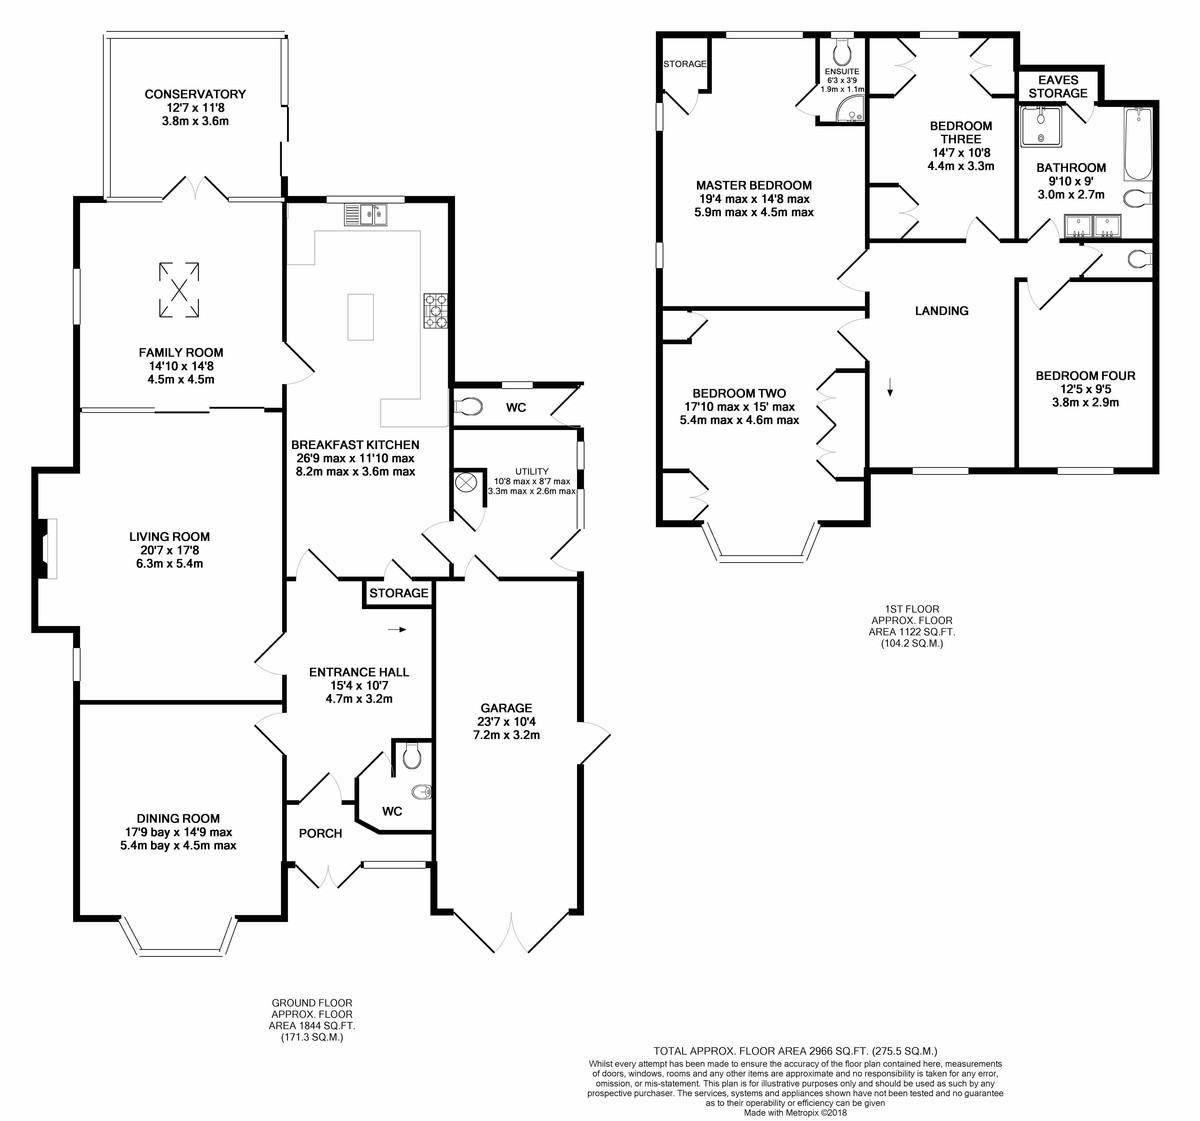 Anderton Park Road, BIRMINGHAM, West Midlands floorplan 1 of 1